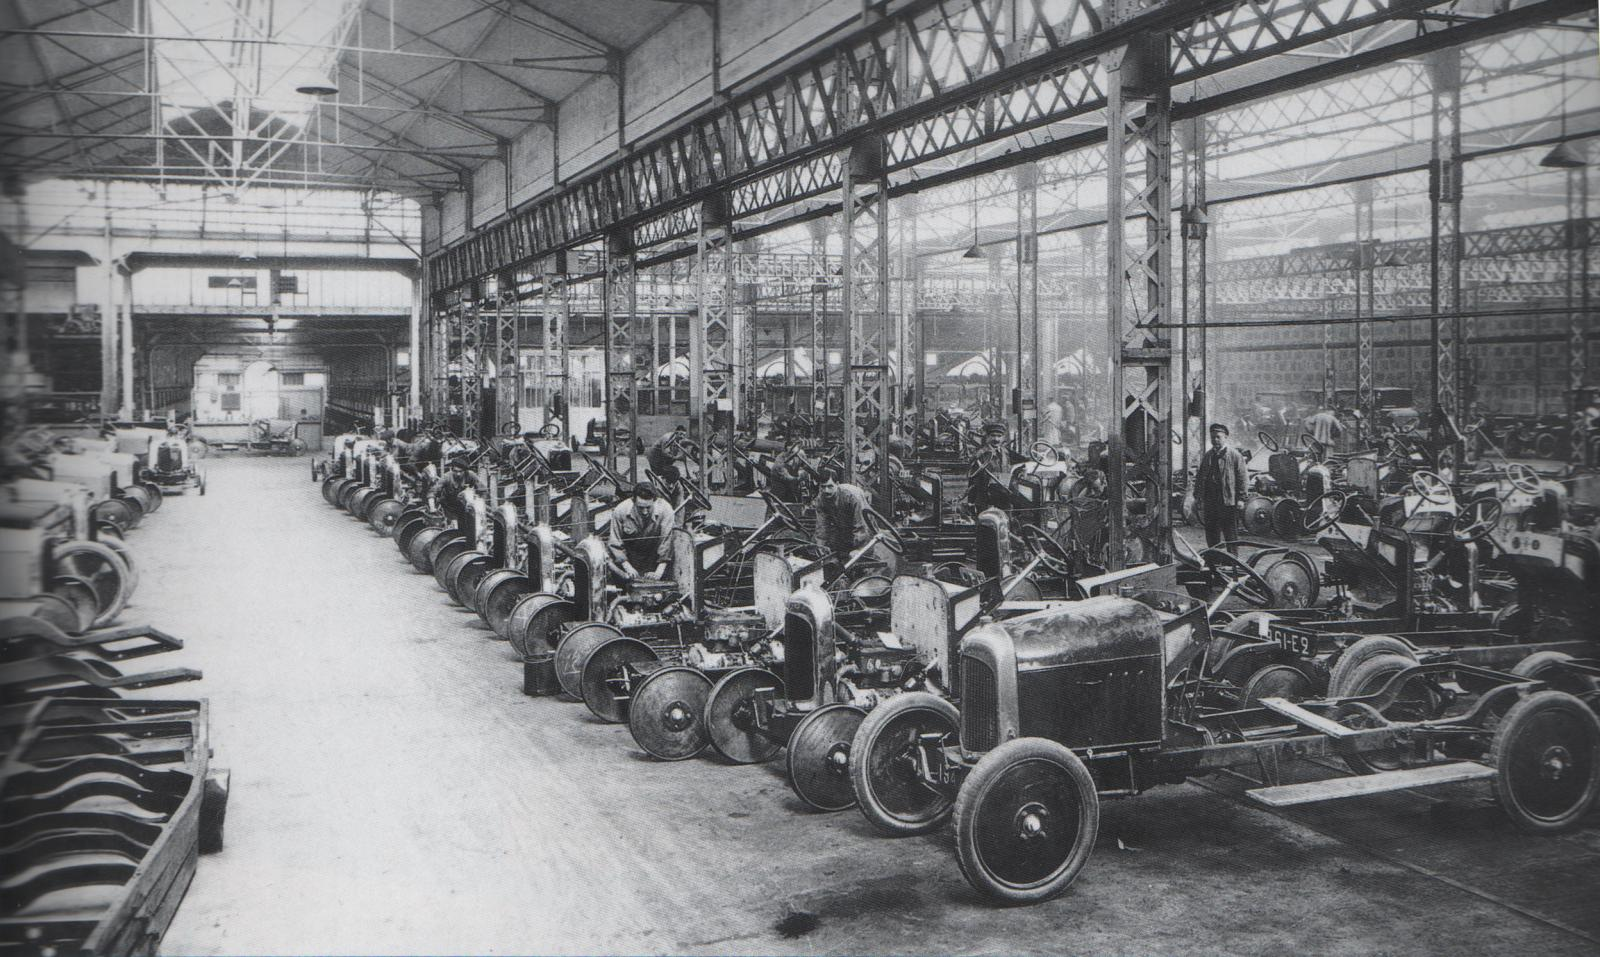 Type A production line at Quai de Javel